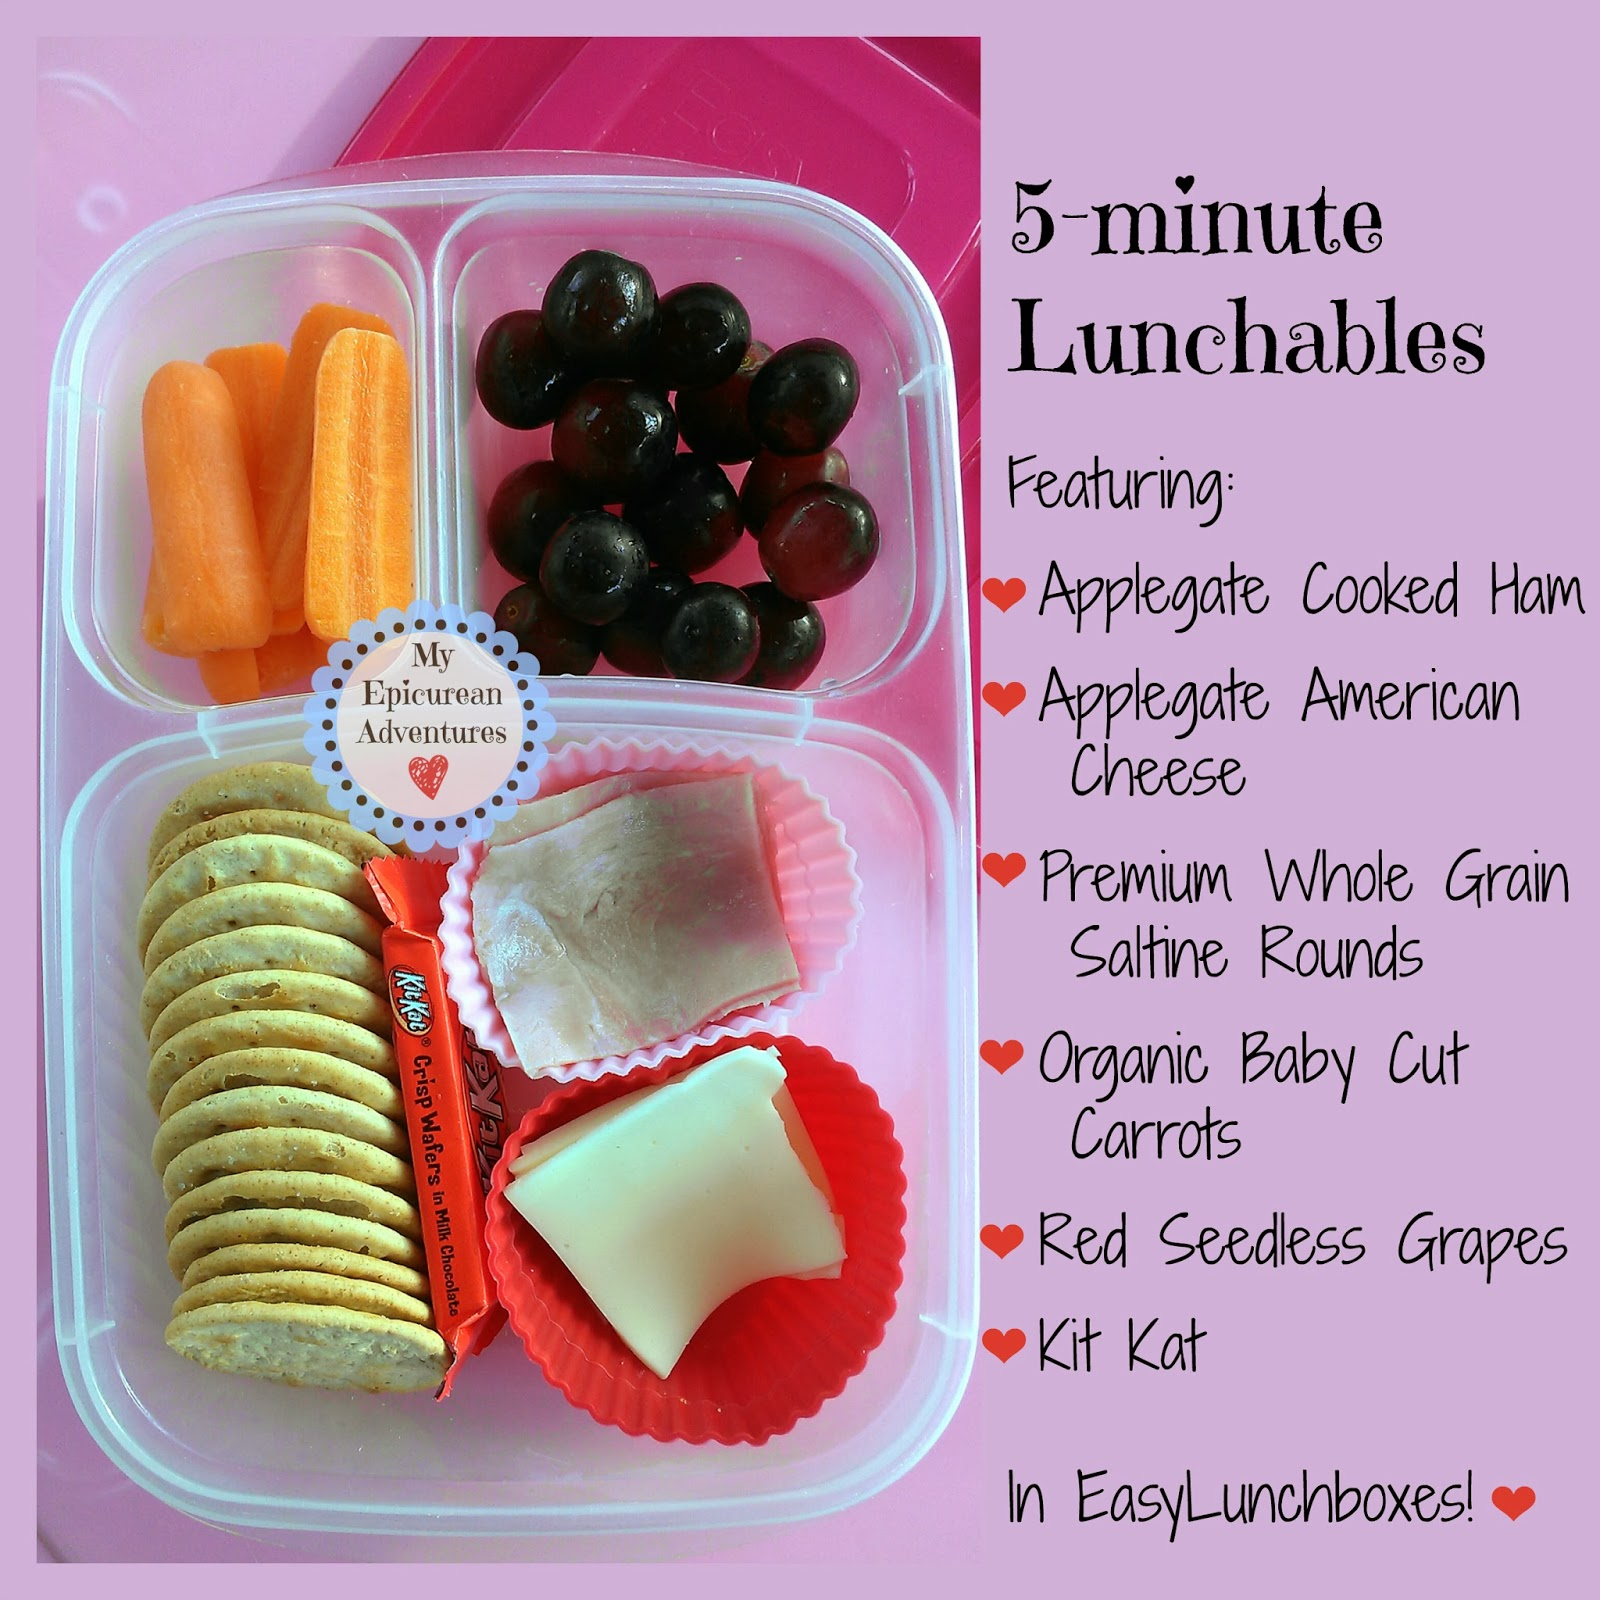 My Epicurean Adventures: Easy Lunchables in #easylunchboxes